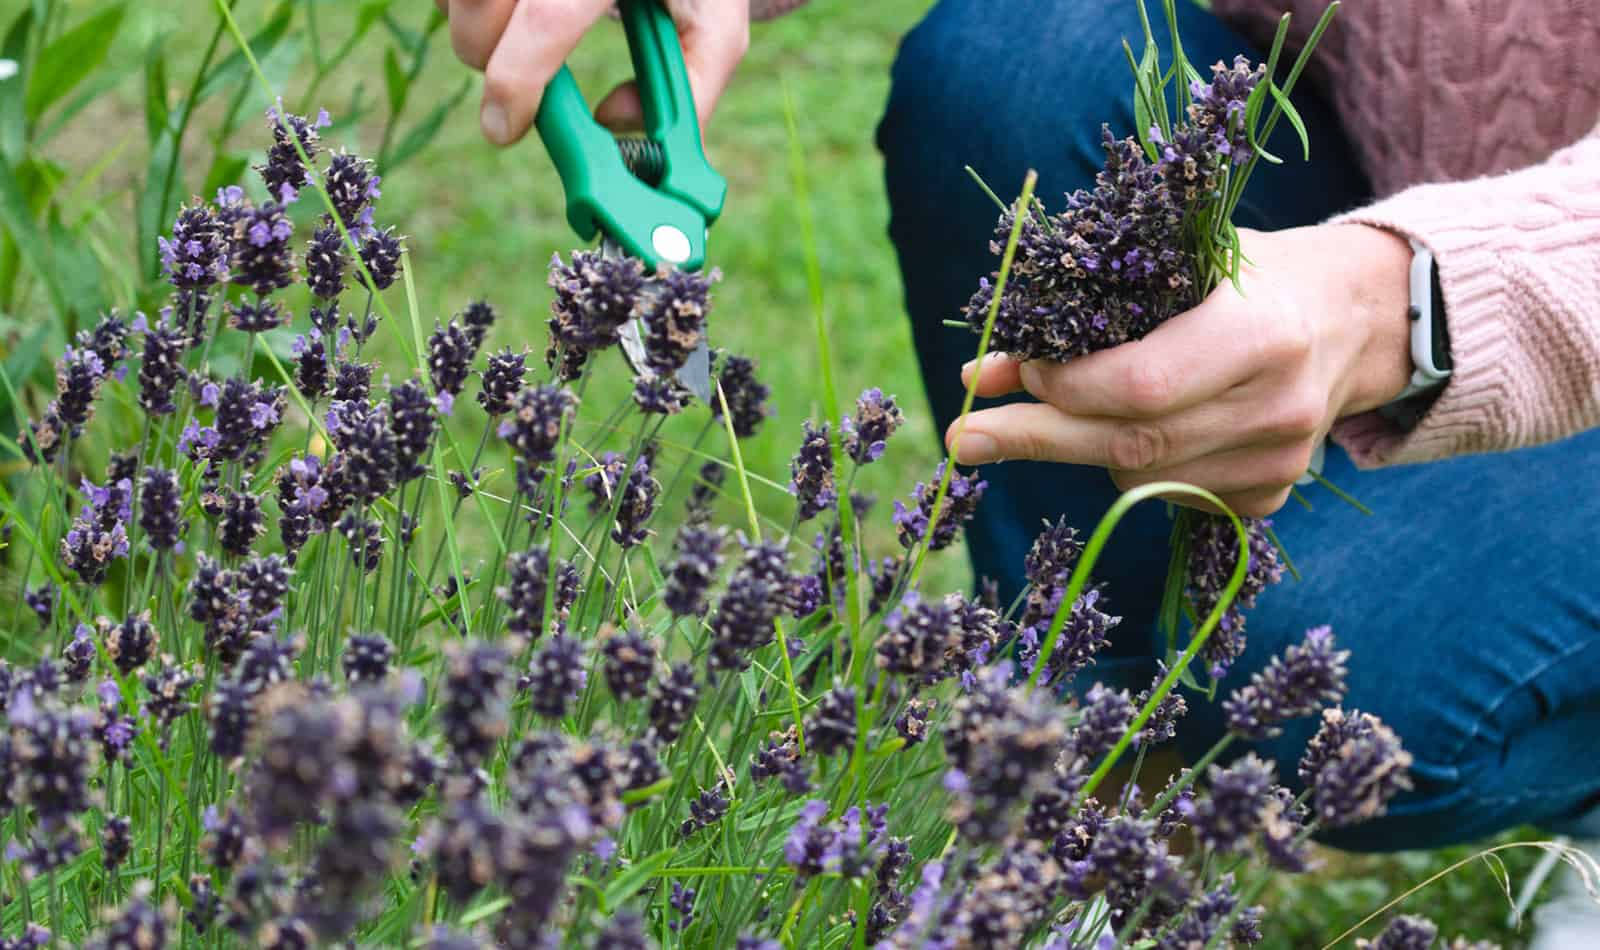 Lady cutting Lavender in her Garden